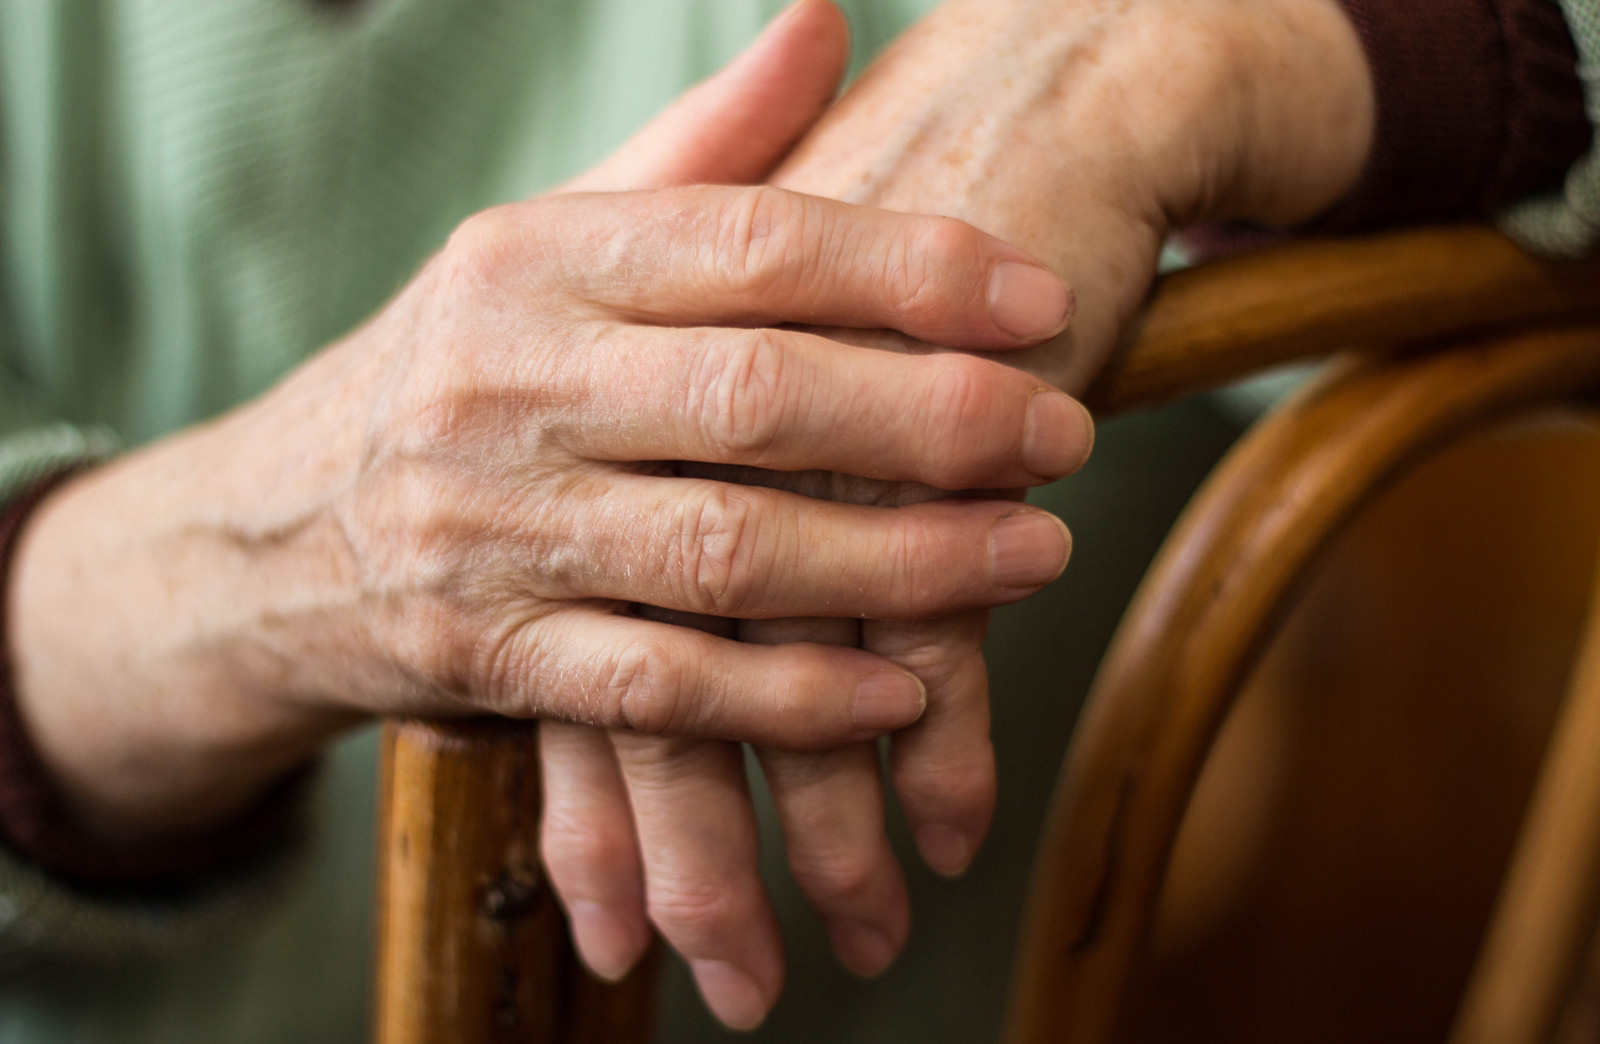 Rheumatoid Arthritis Often Affects the Joints in Your Hands